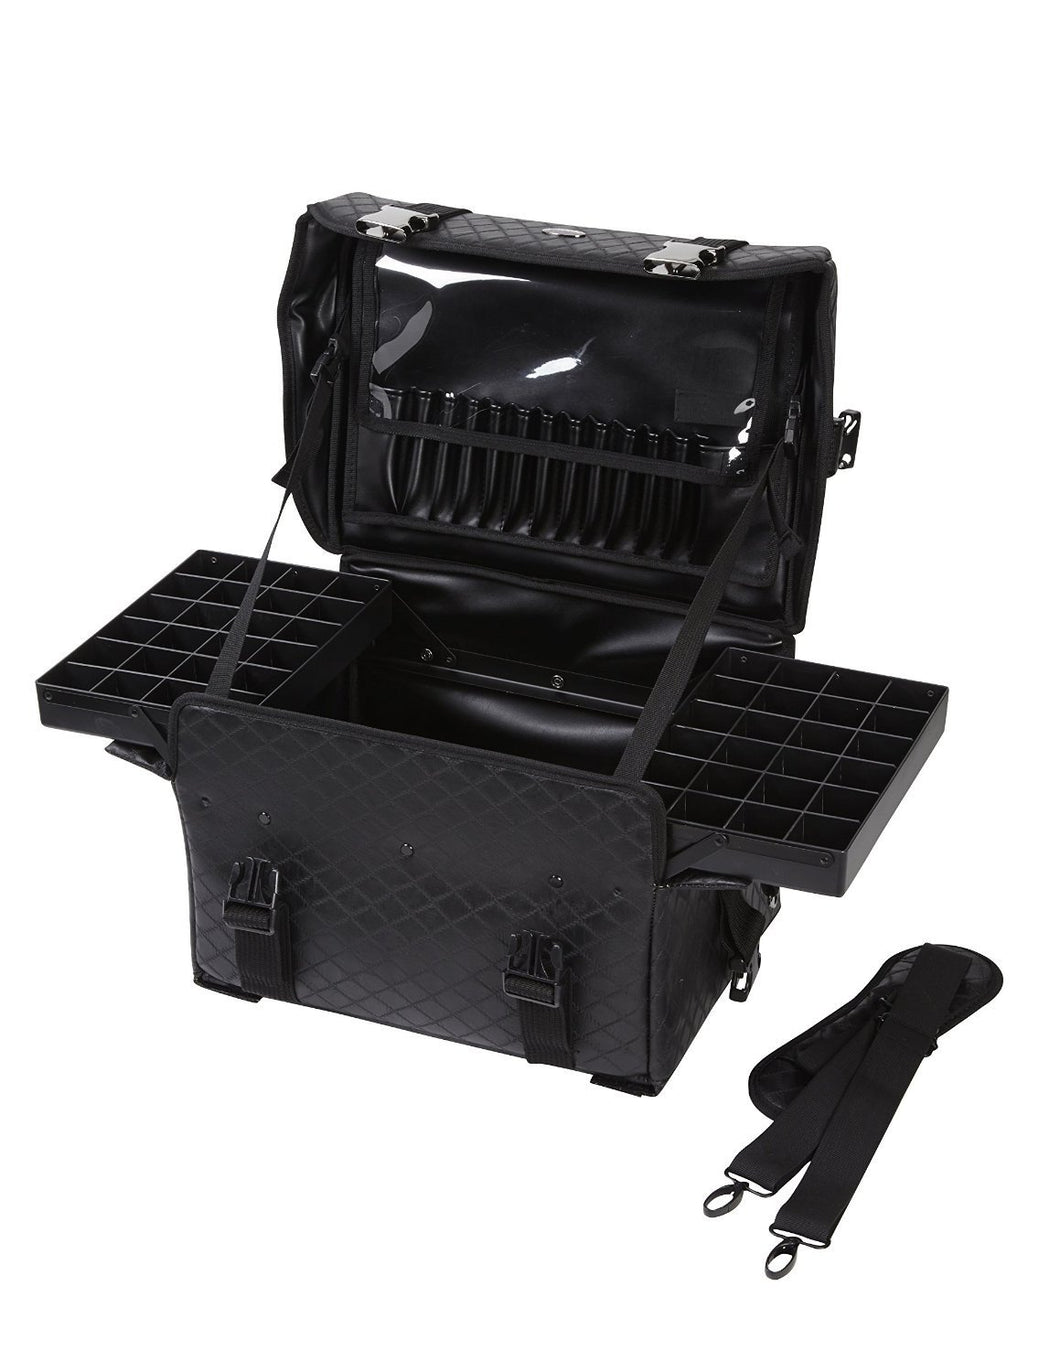 Soft Sided Makeup Artist Organizer Case Carry-On w/ Travel Brush Holder